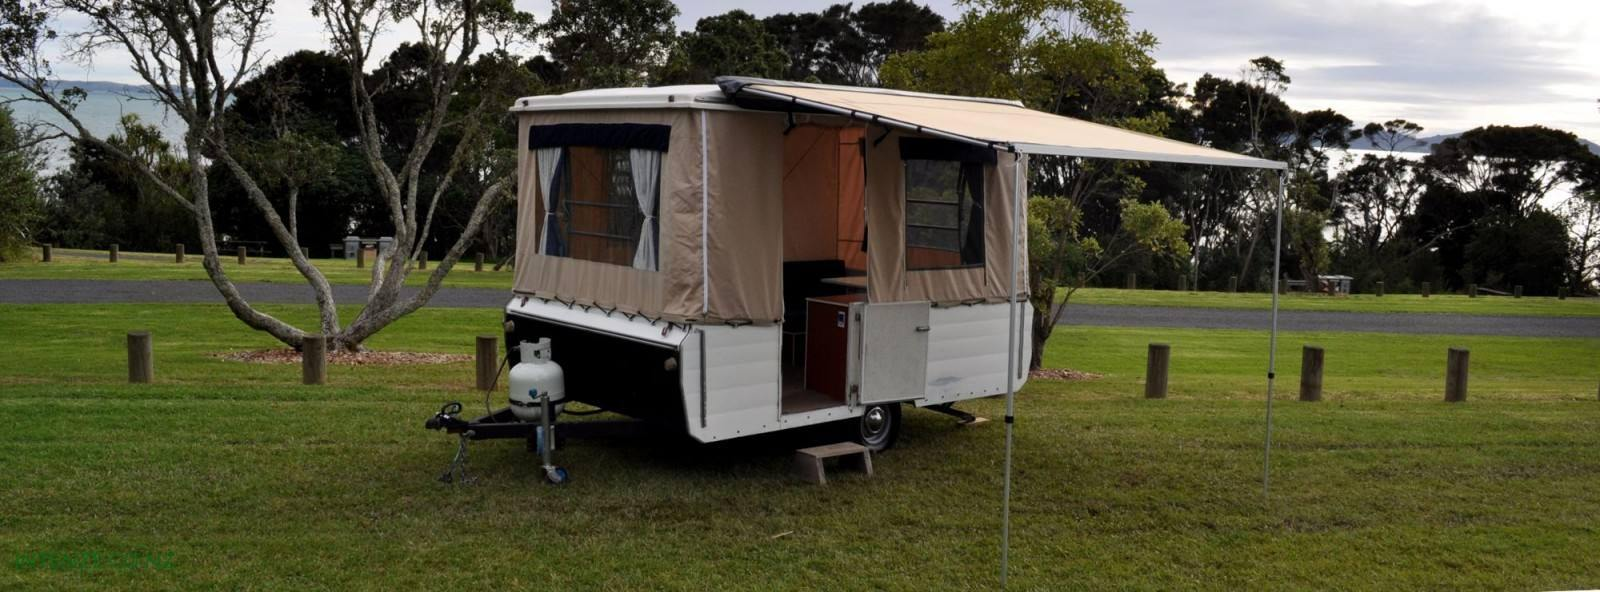 Wide Range Of Quality Canvas Replacement Surrounds And Awnings For NZ Australian Pop Top Caravans